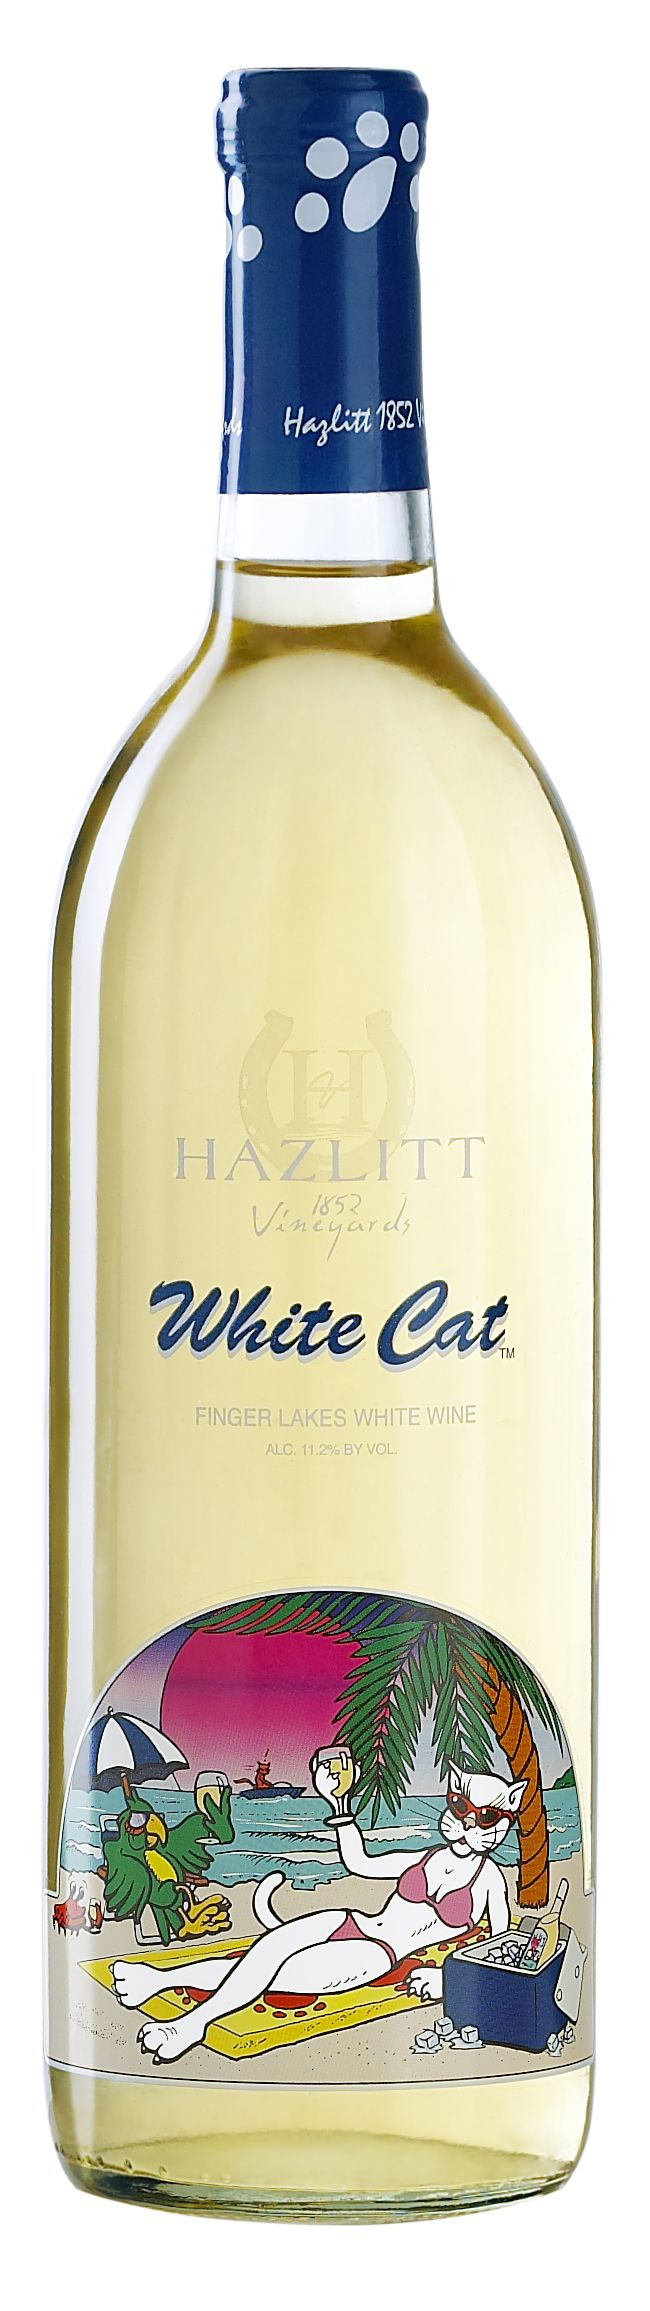 Embrace the taste of warm tropical breezes, invigorating sunshine and relaxation. From the makers of Red Cat, the original hot tub wine, welcome the purr-fect partner, White Cat.